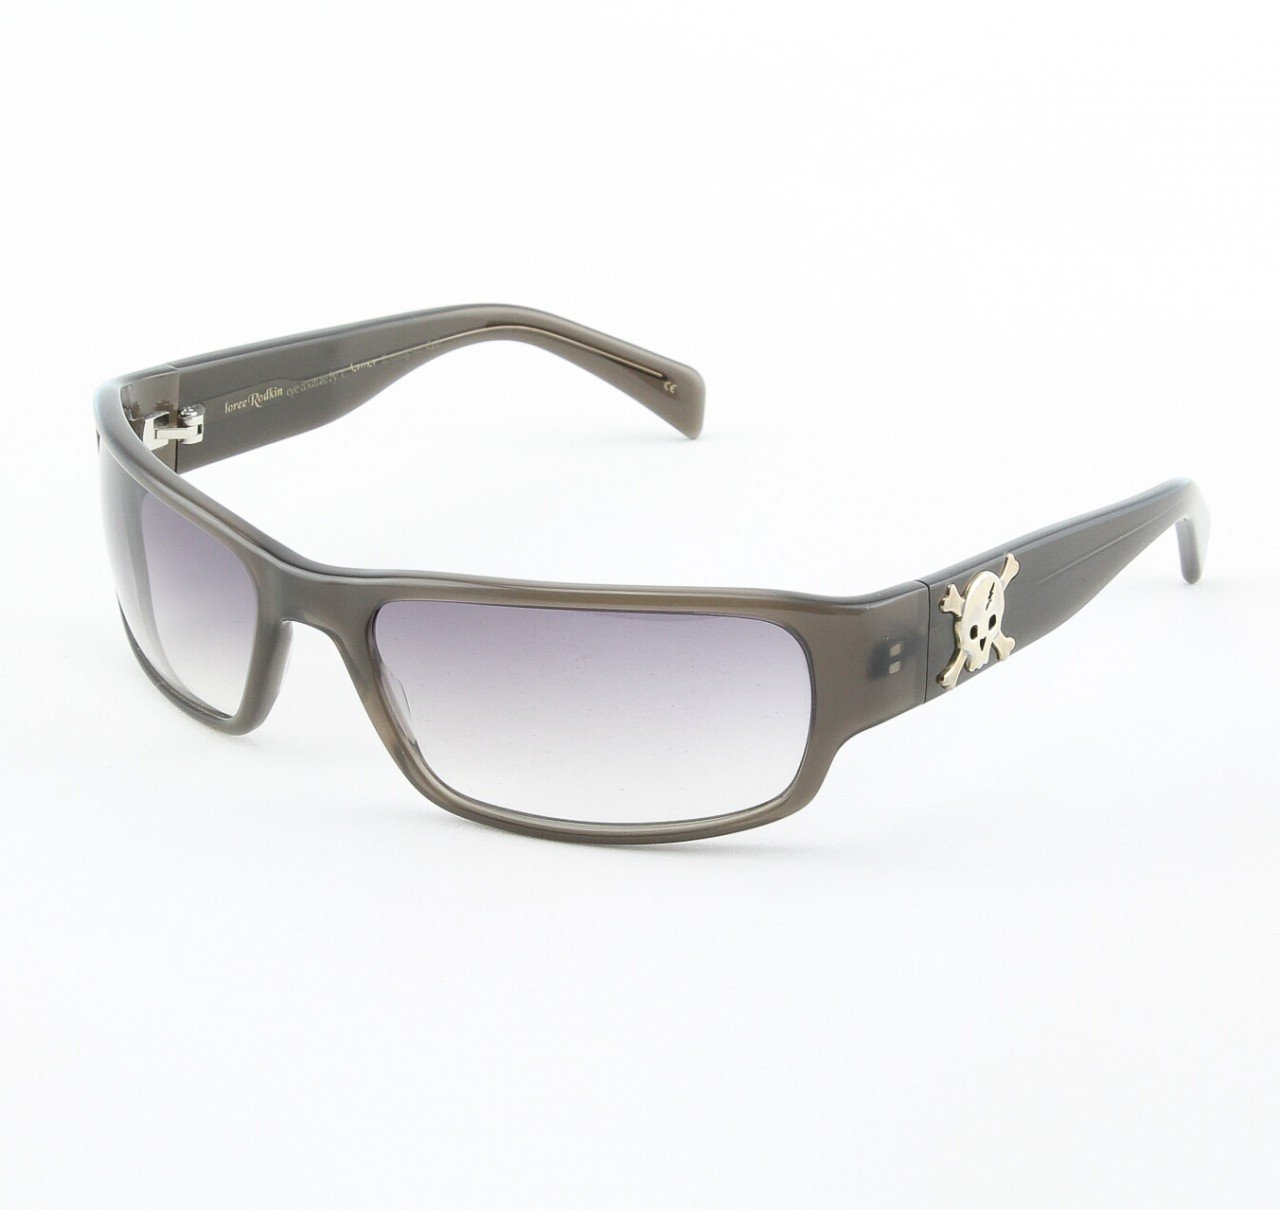 Loree Rodkin Tommy-M Sunglasses by Sama Col. Slate with Gray Gradient Lenses and Sterling Silver